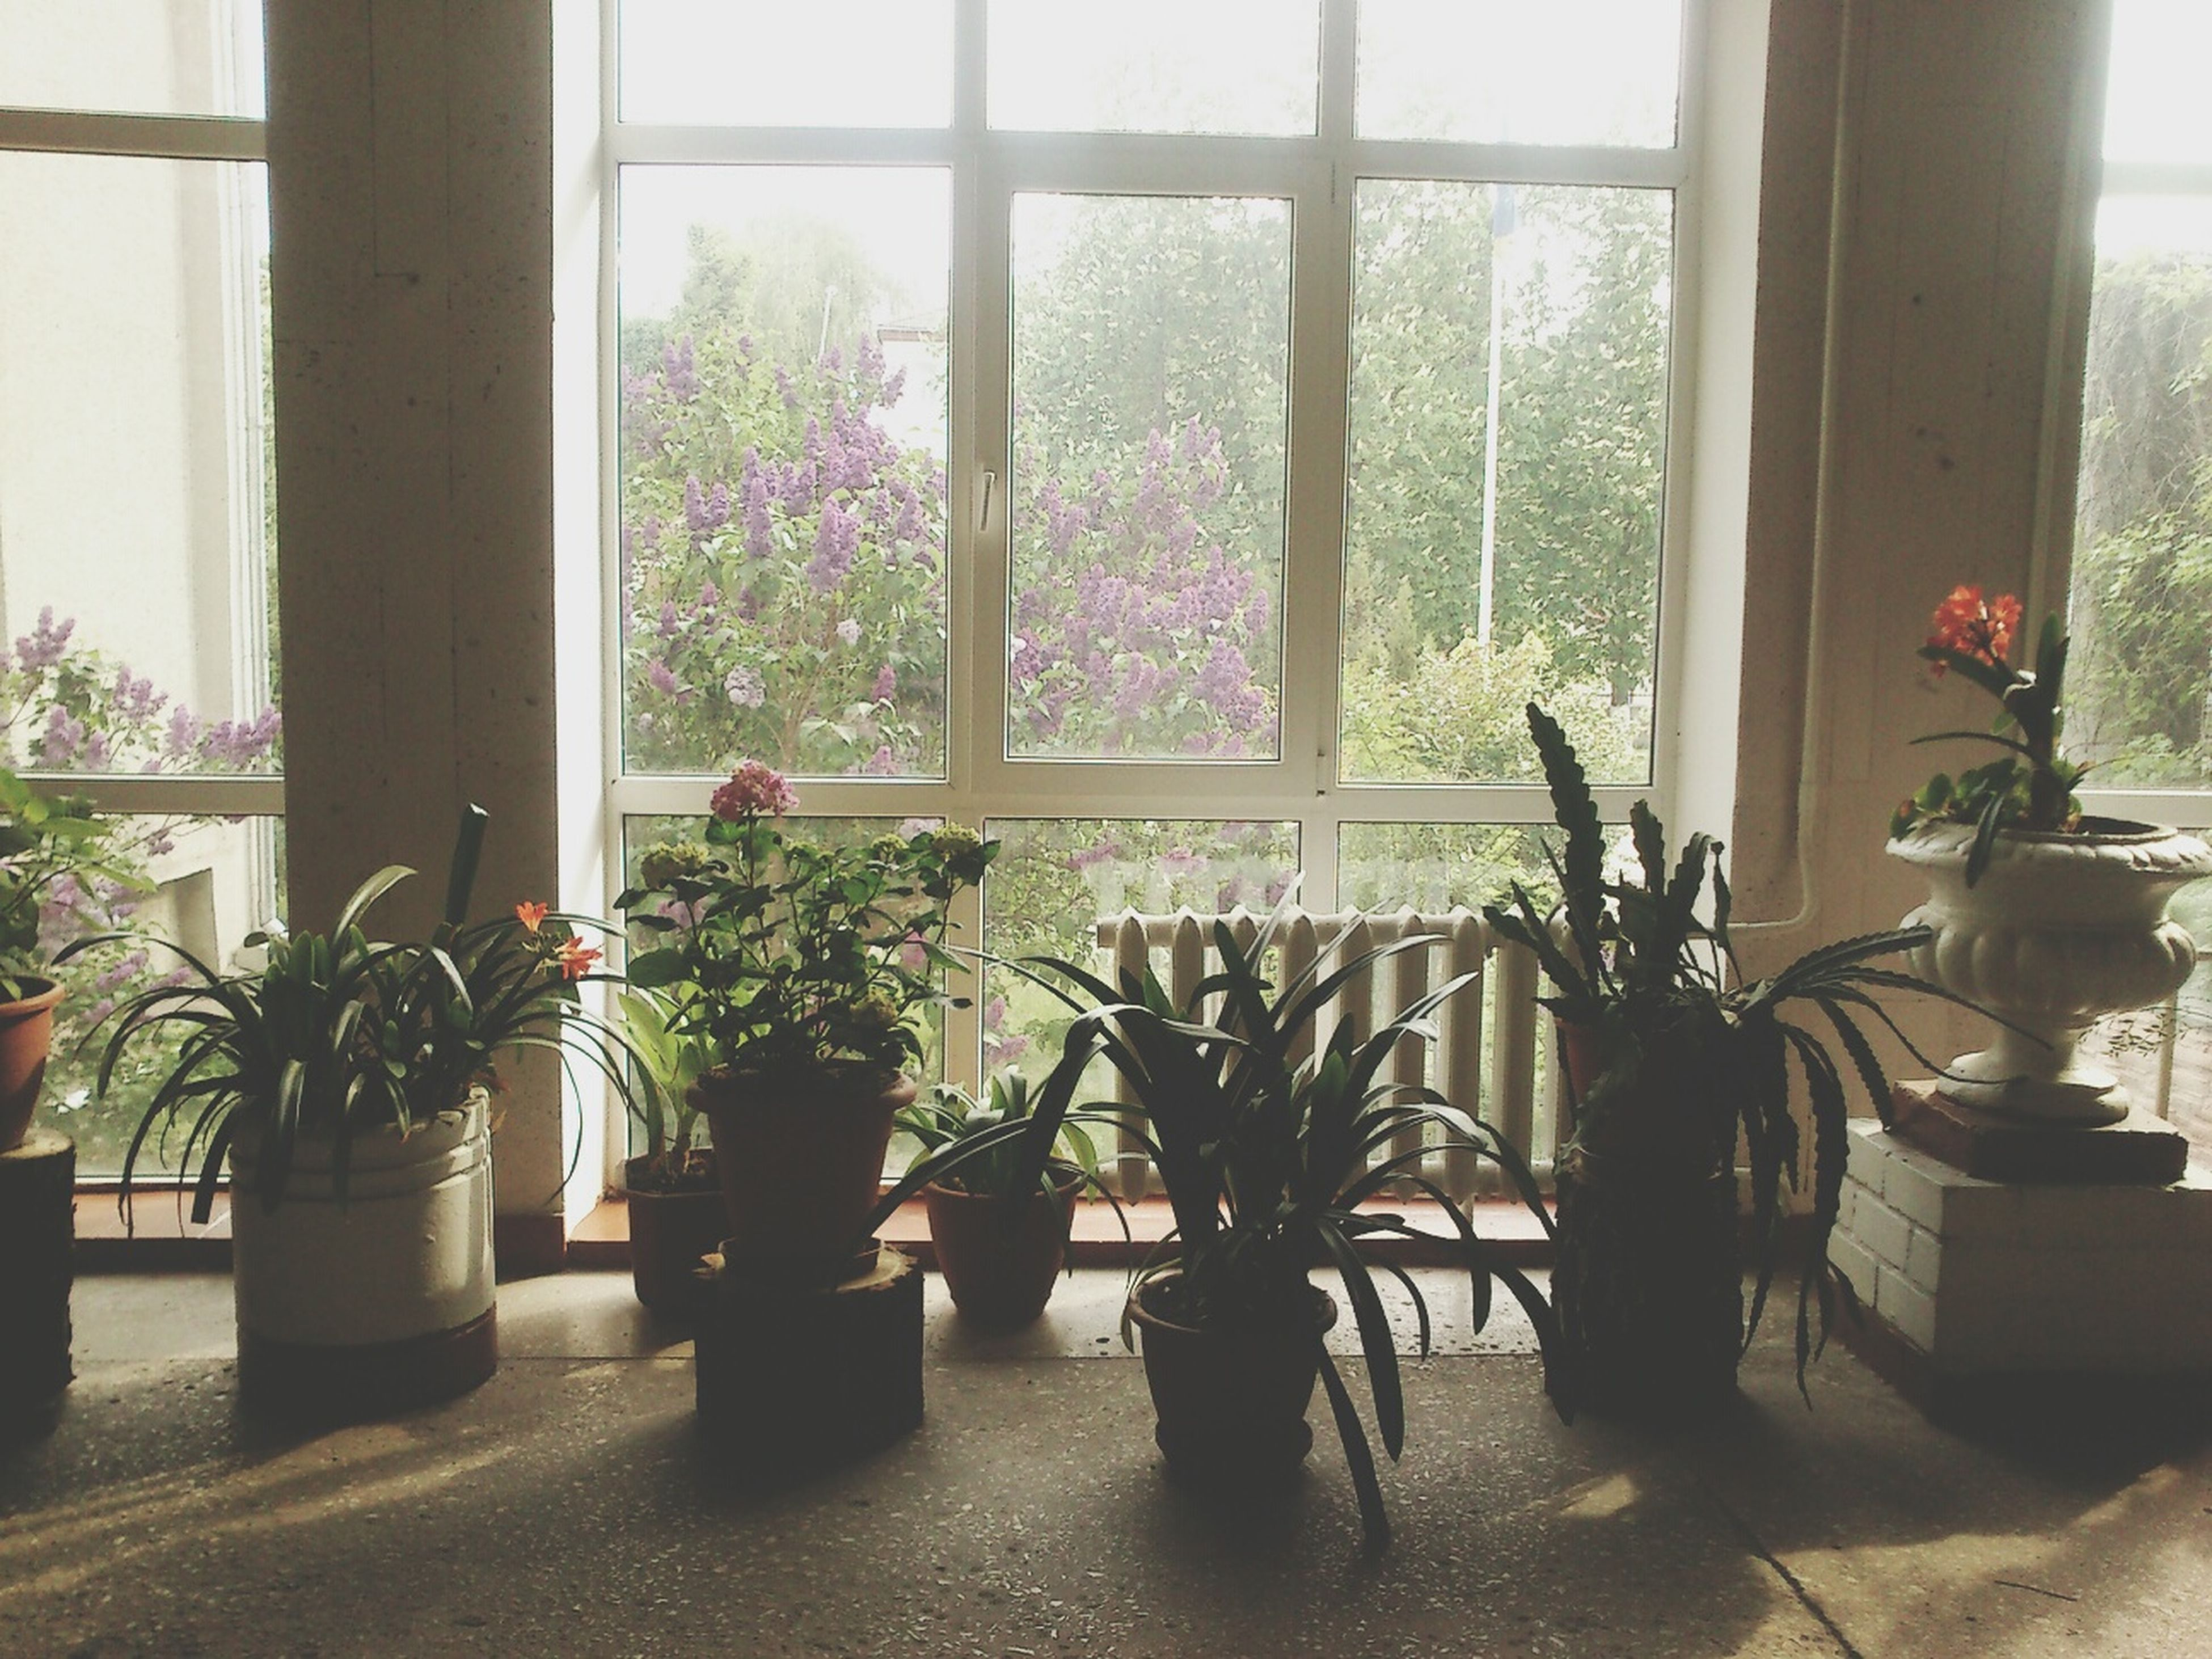 potted plant, indoors, window, plant, flower, growth, window sill, built structure, glass - material, architecture, flower pot, vase, table, house, home interior, transparent, door, sunlight, day, pot plant